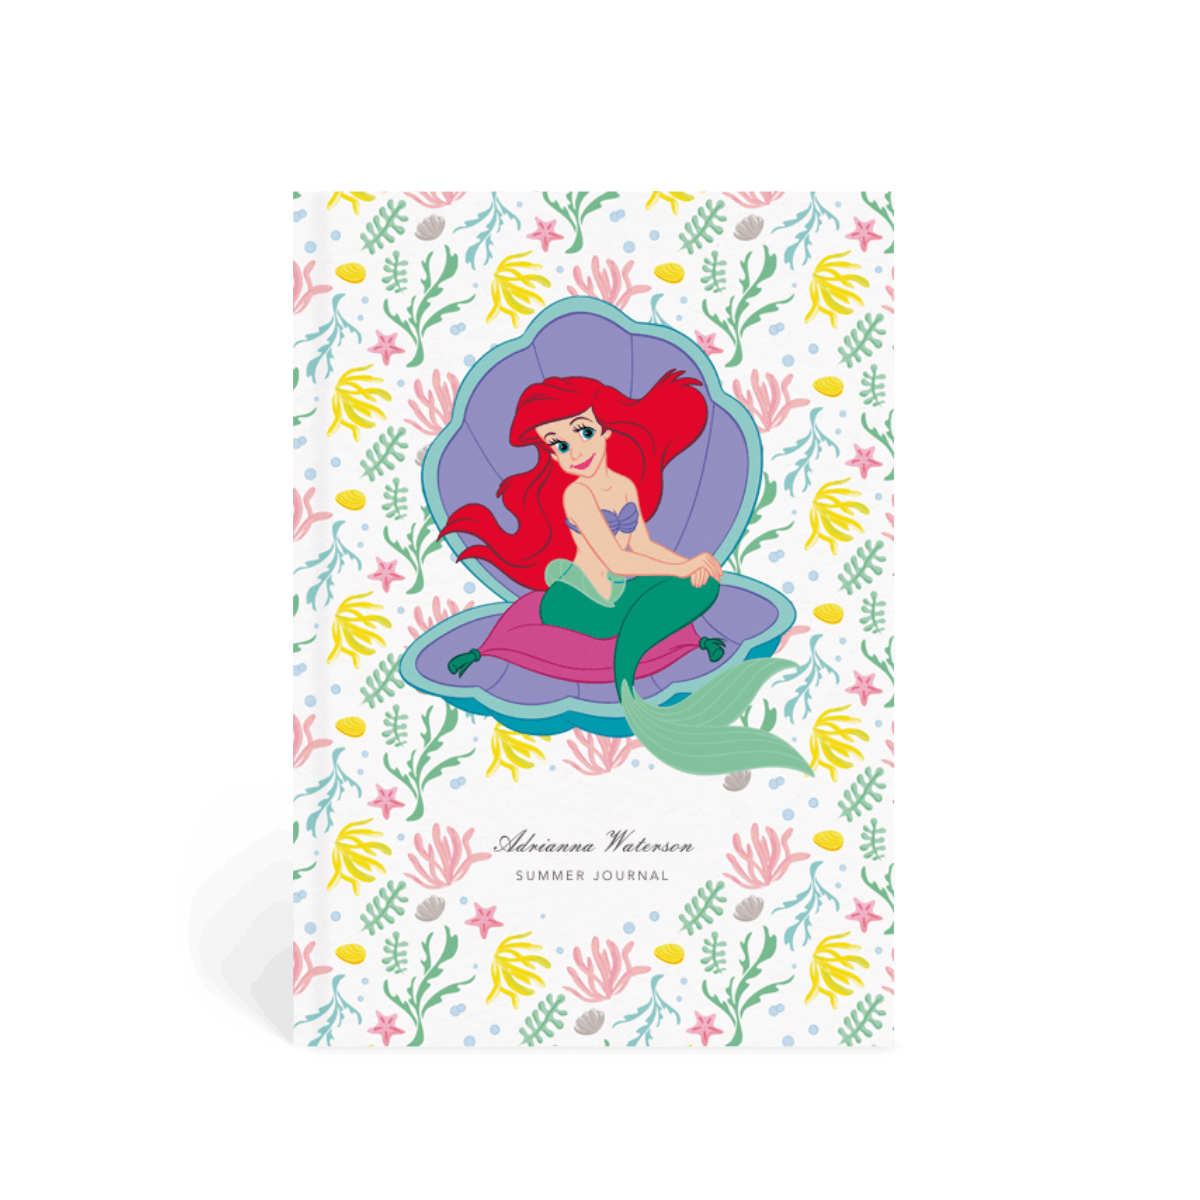 Https%3a%2f%2fwww.papier.com%2fproduct image%2f54107%2f25%2fthe little mermaid 13015 front 1569452536.png?ixlib=rb 1.1